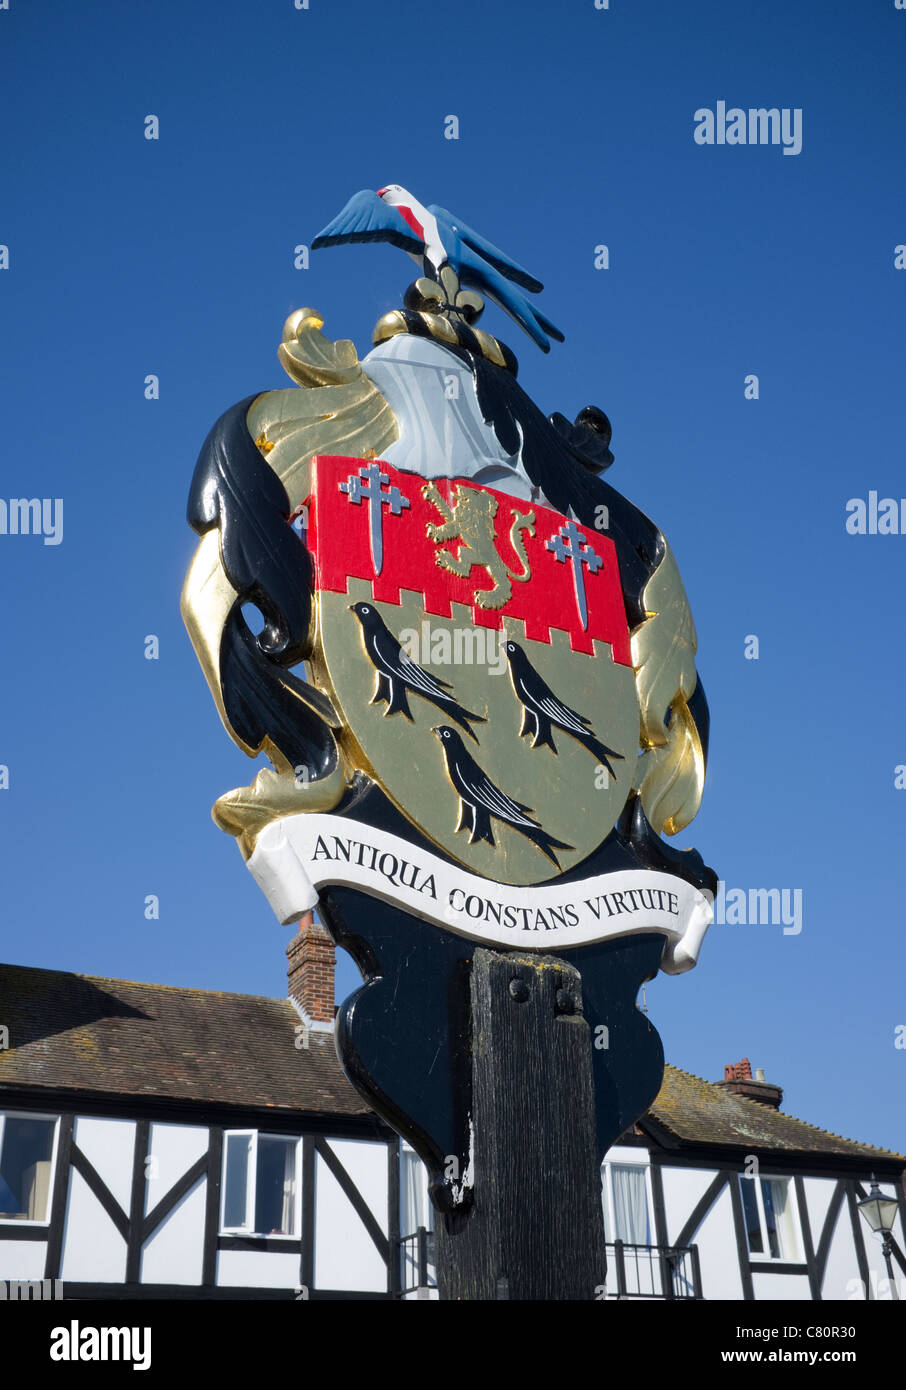 Arundel Town Crest -1 - Stock Image